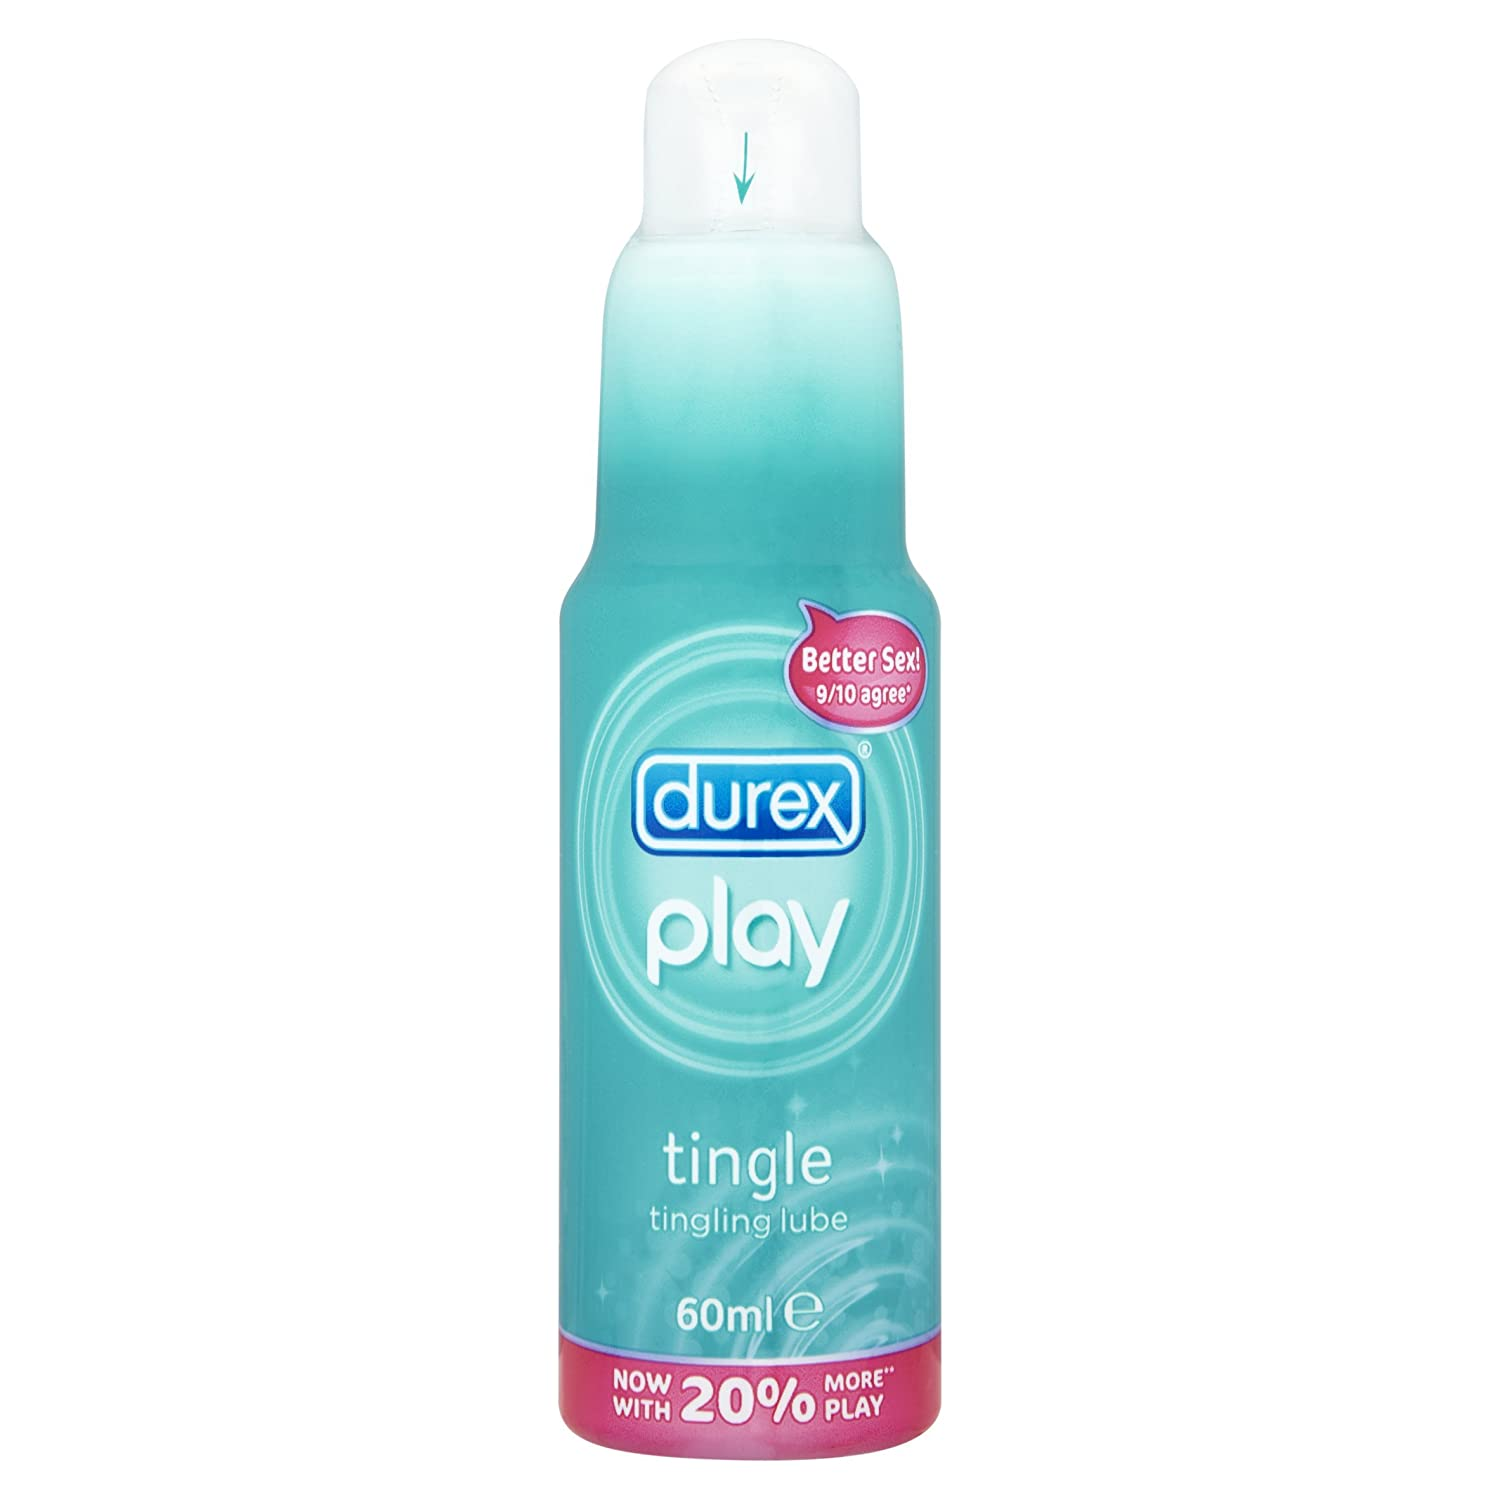 Durex Play Tingling Lube 60ml Health Personal Care Intimate 100 Ml